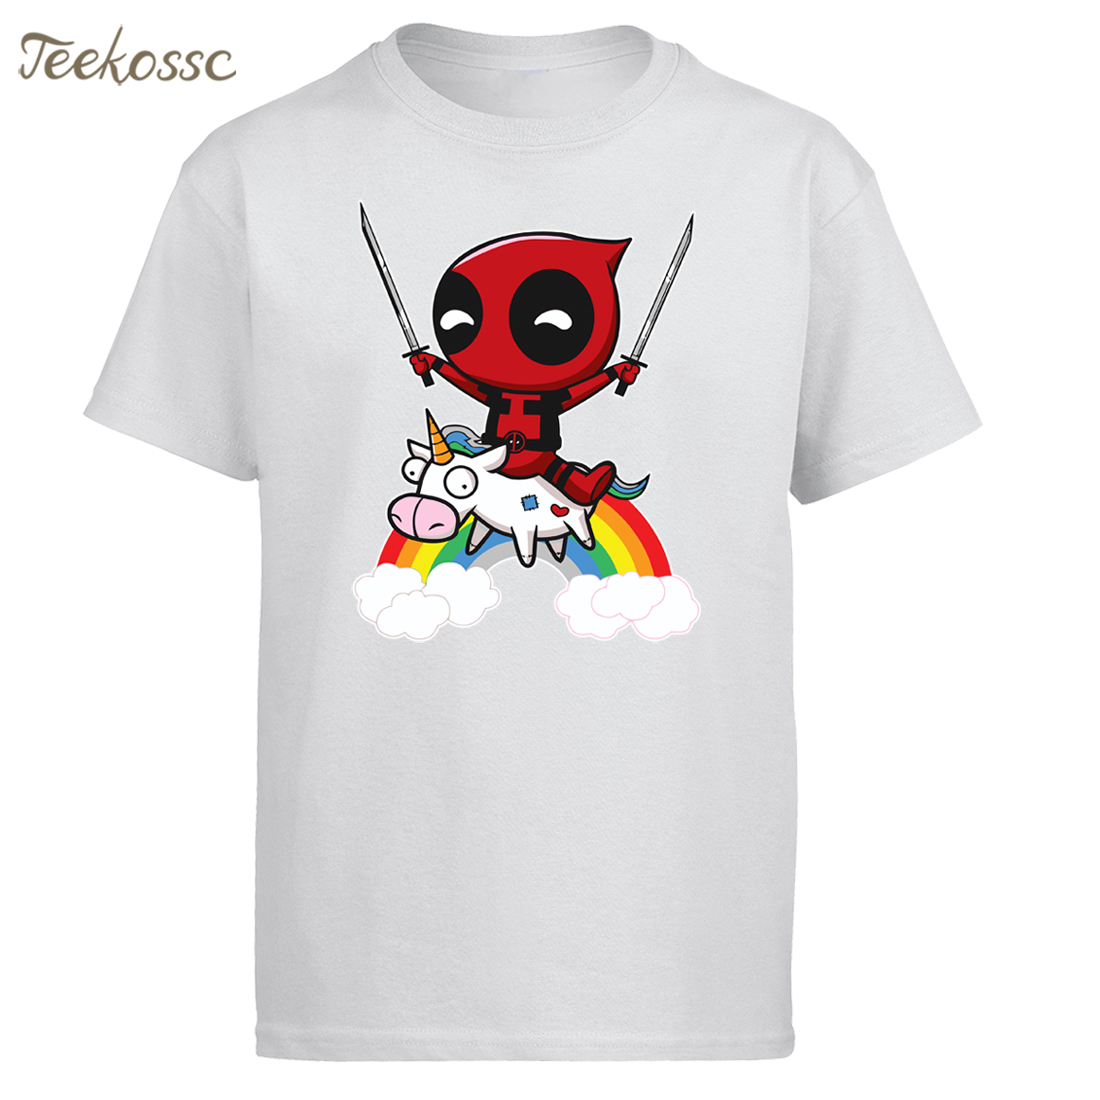 Deadpool Men T Shirt Funny Tshirt 2018 New Brand Summer Tops Tee Mens T Shirts Cotton Dead Pool T-Shirt Camiseta Homme